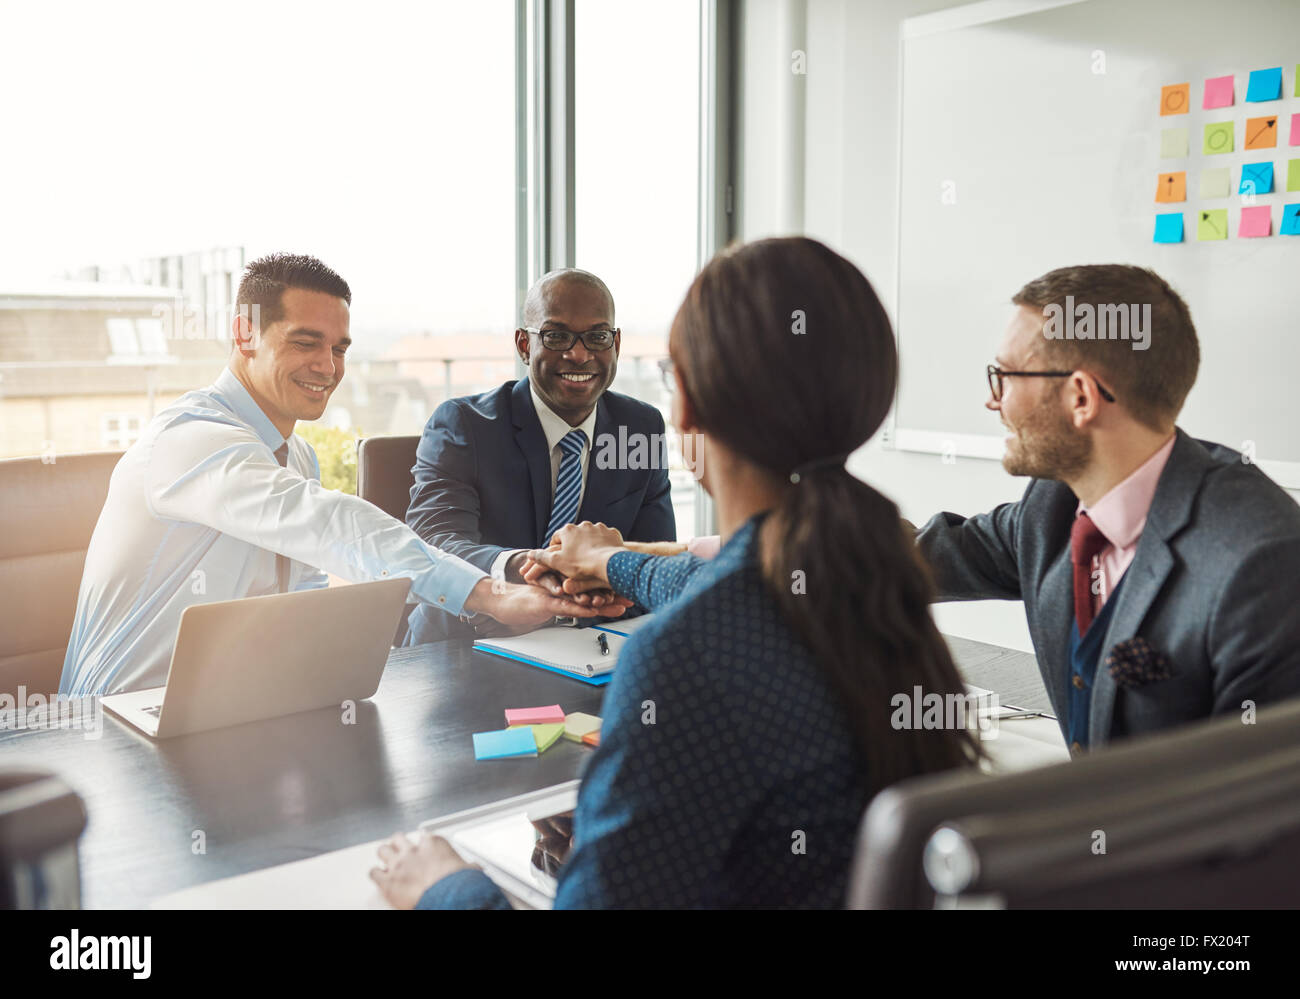 Successful multiracial business team working together affirm their commitment by linking hands across an office - Stock Image